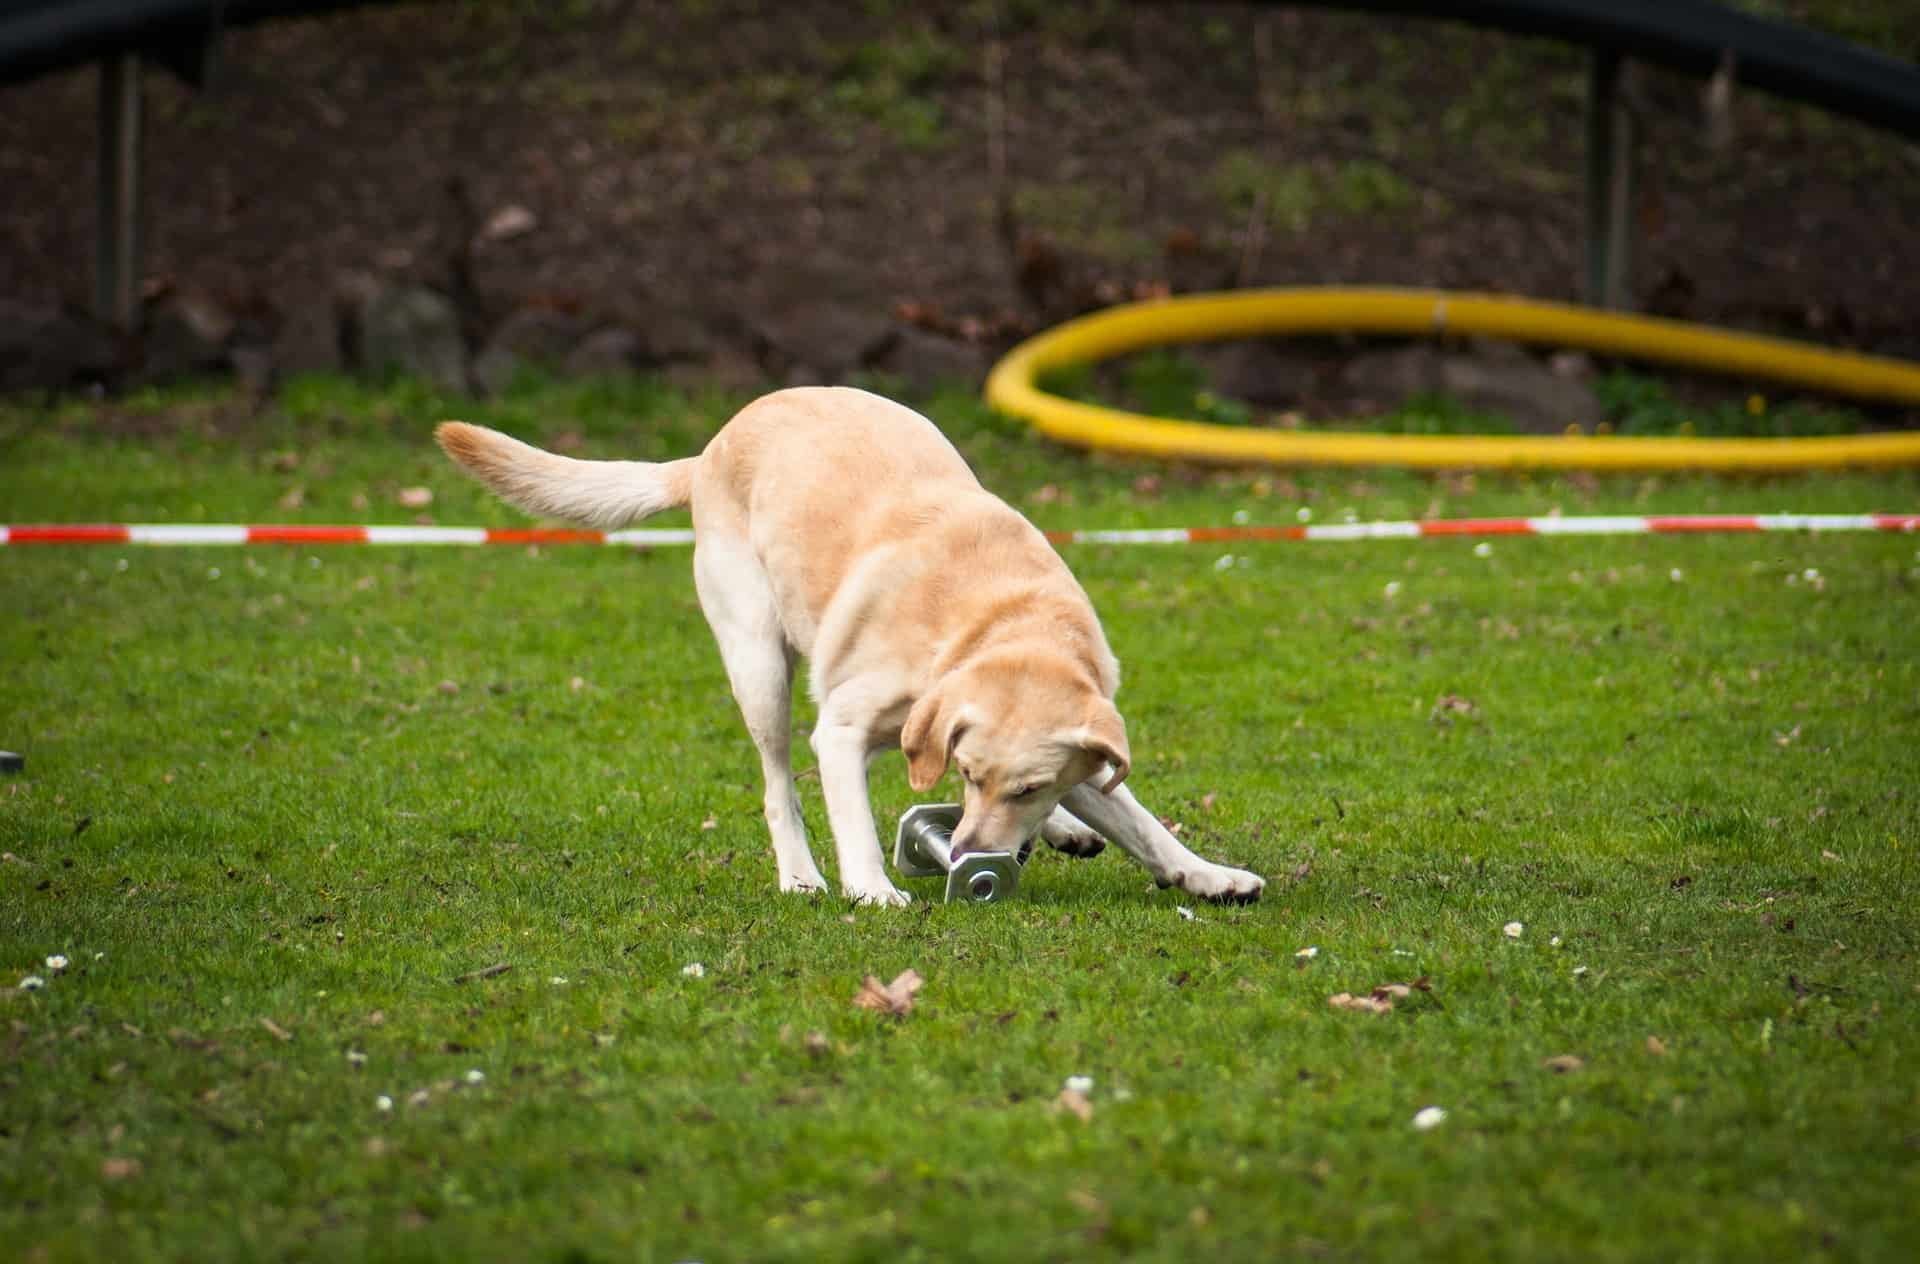 Labrador dog chewing on an metal object in a field of grass